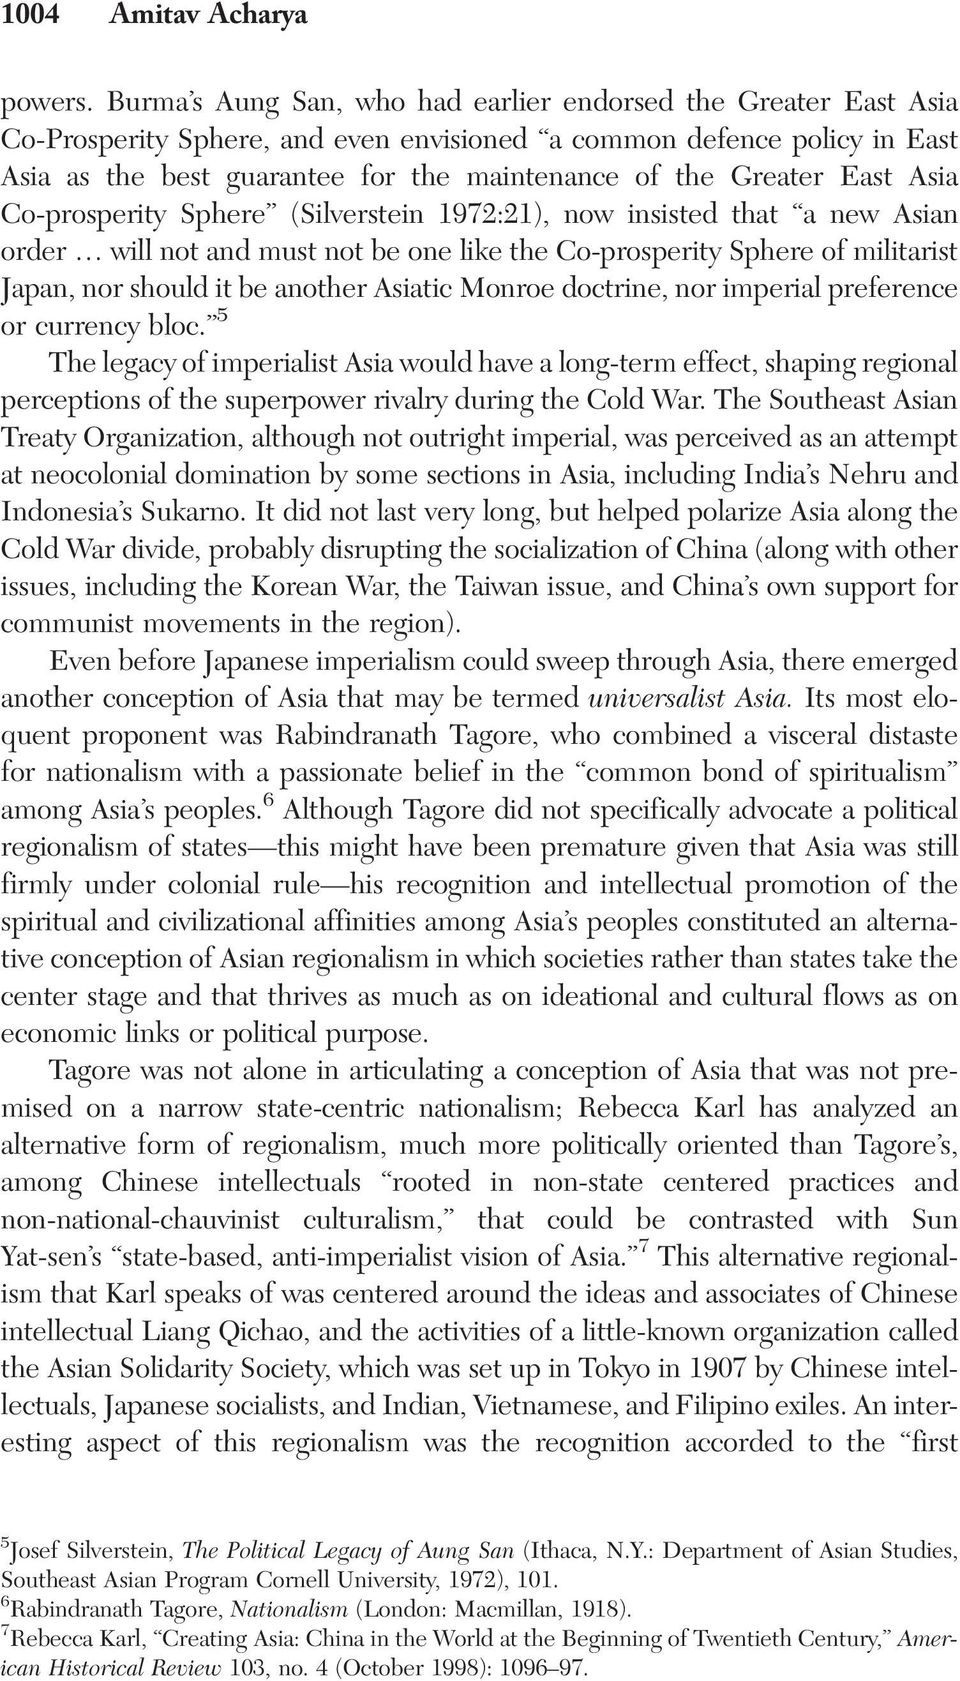 Greater East Asia Co-prosperity Sphere (Silverstein 1972:21), now insisted that a new Asian order will not and must not be one like the Co-prosperity Sphere of militarist Japan, nor should it be